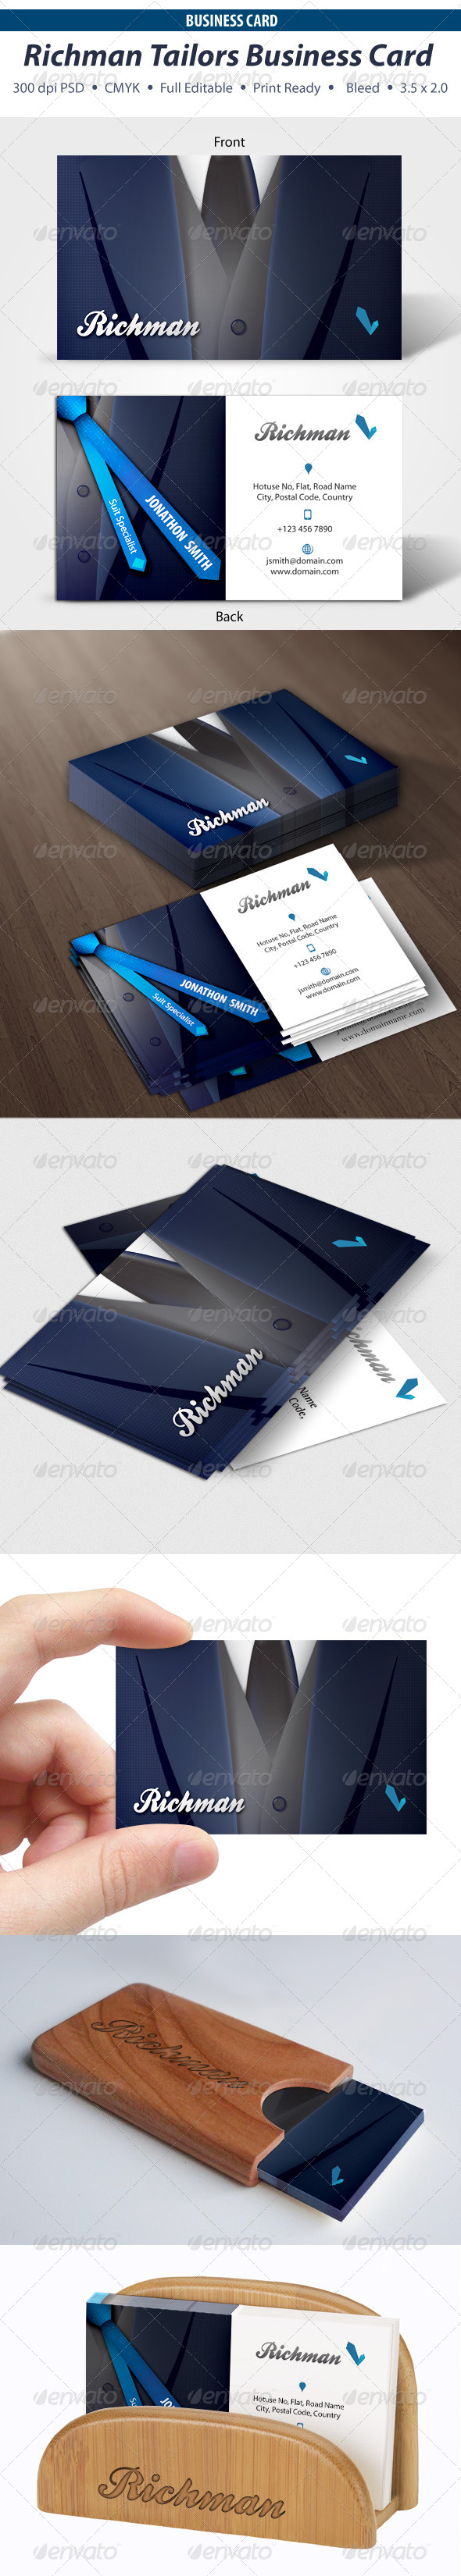 Richman Tailors Business Card - Creative Business Cards